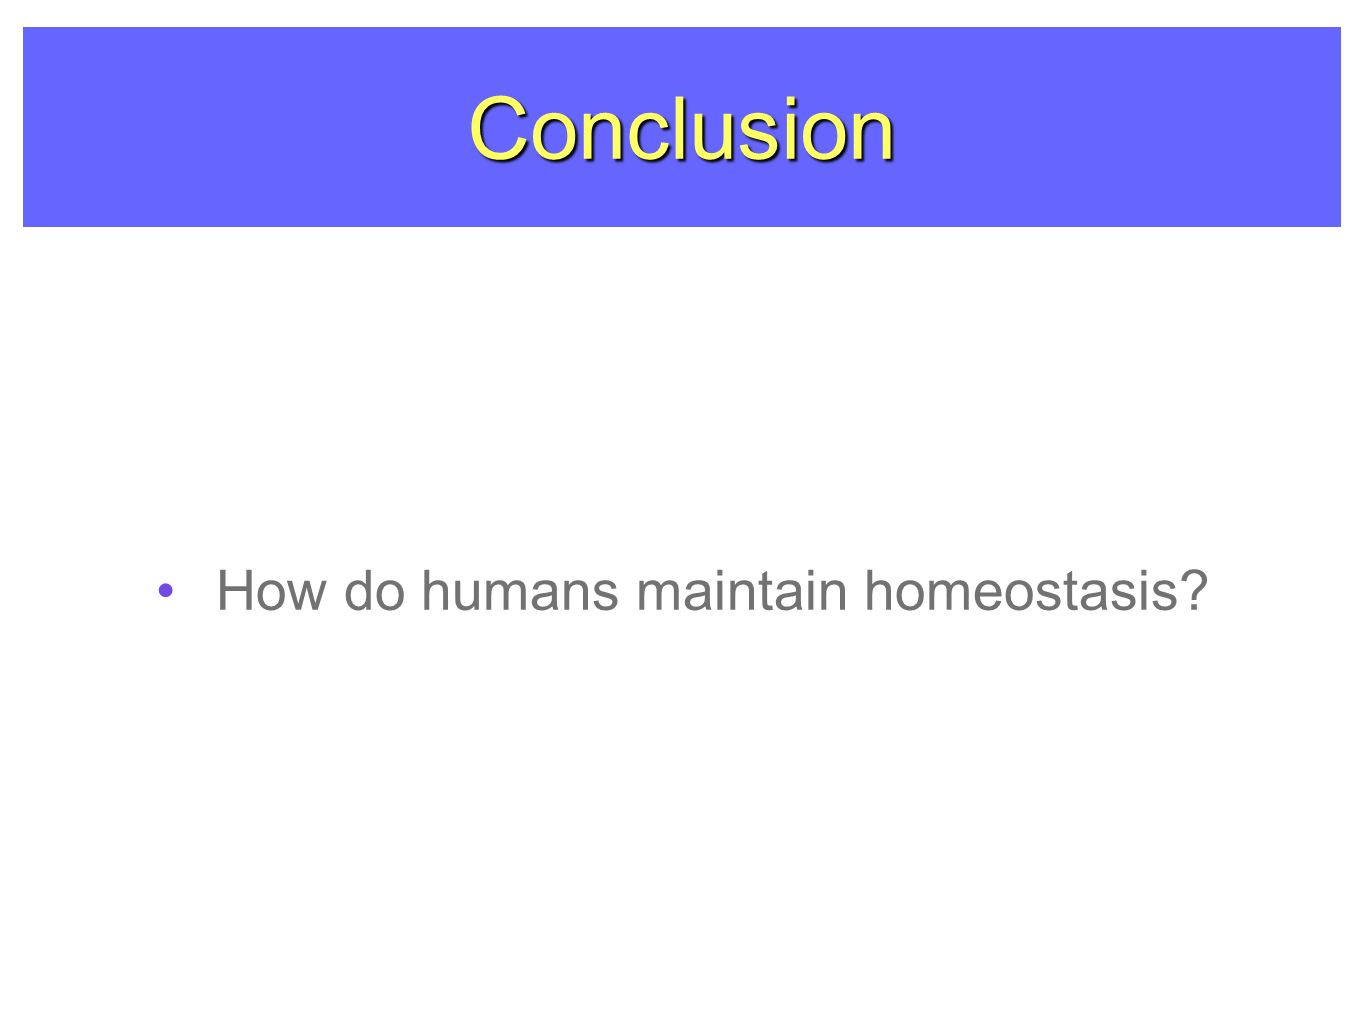 4 things cells do to maintain homeostasis - 15 Conclusion How Do Humans Maintain Homeostasis